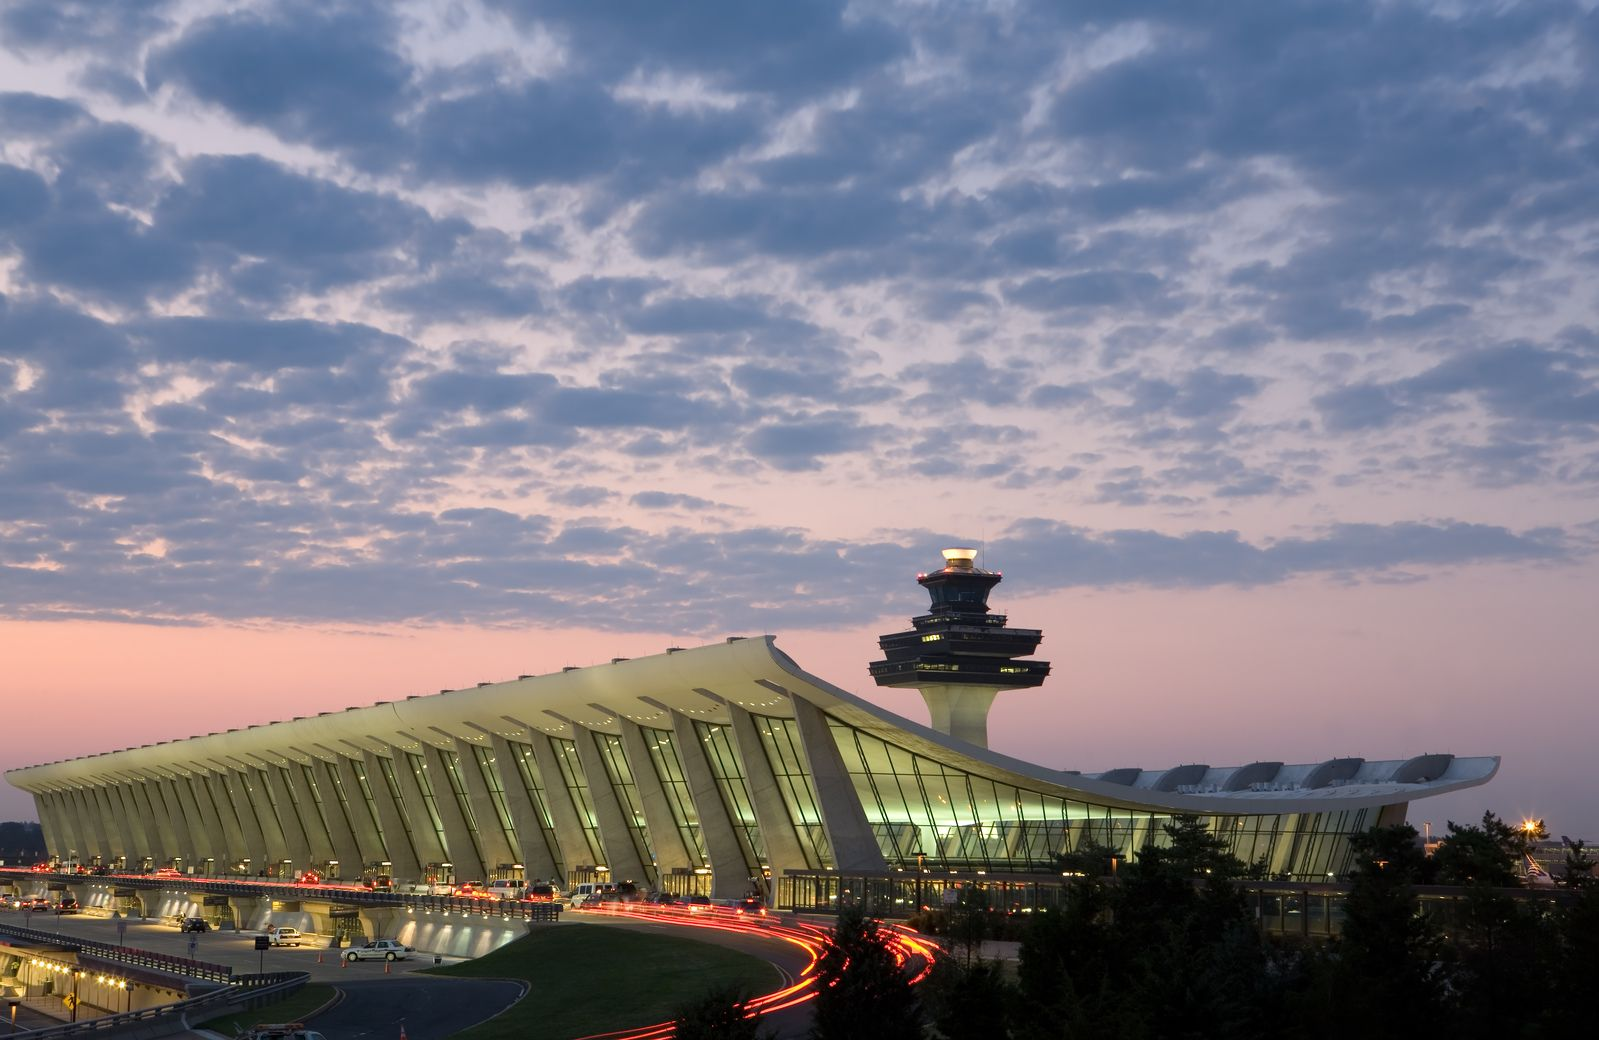 EASY ACCESS TO DULLES AIRPORT AND COMMUTER ROUTES:You won't find a better location if you need to commute or get to Dulles Airport quickly! You'll enjoy easy access to Rte. 28, 267 andthe Metro meaning you'll get to where you need to go, faster.